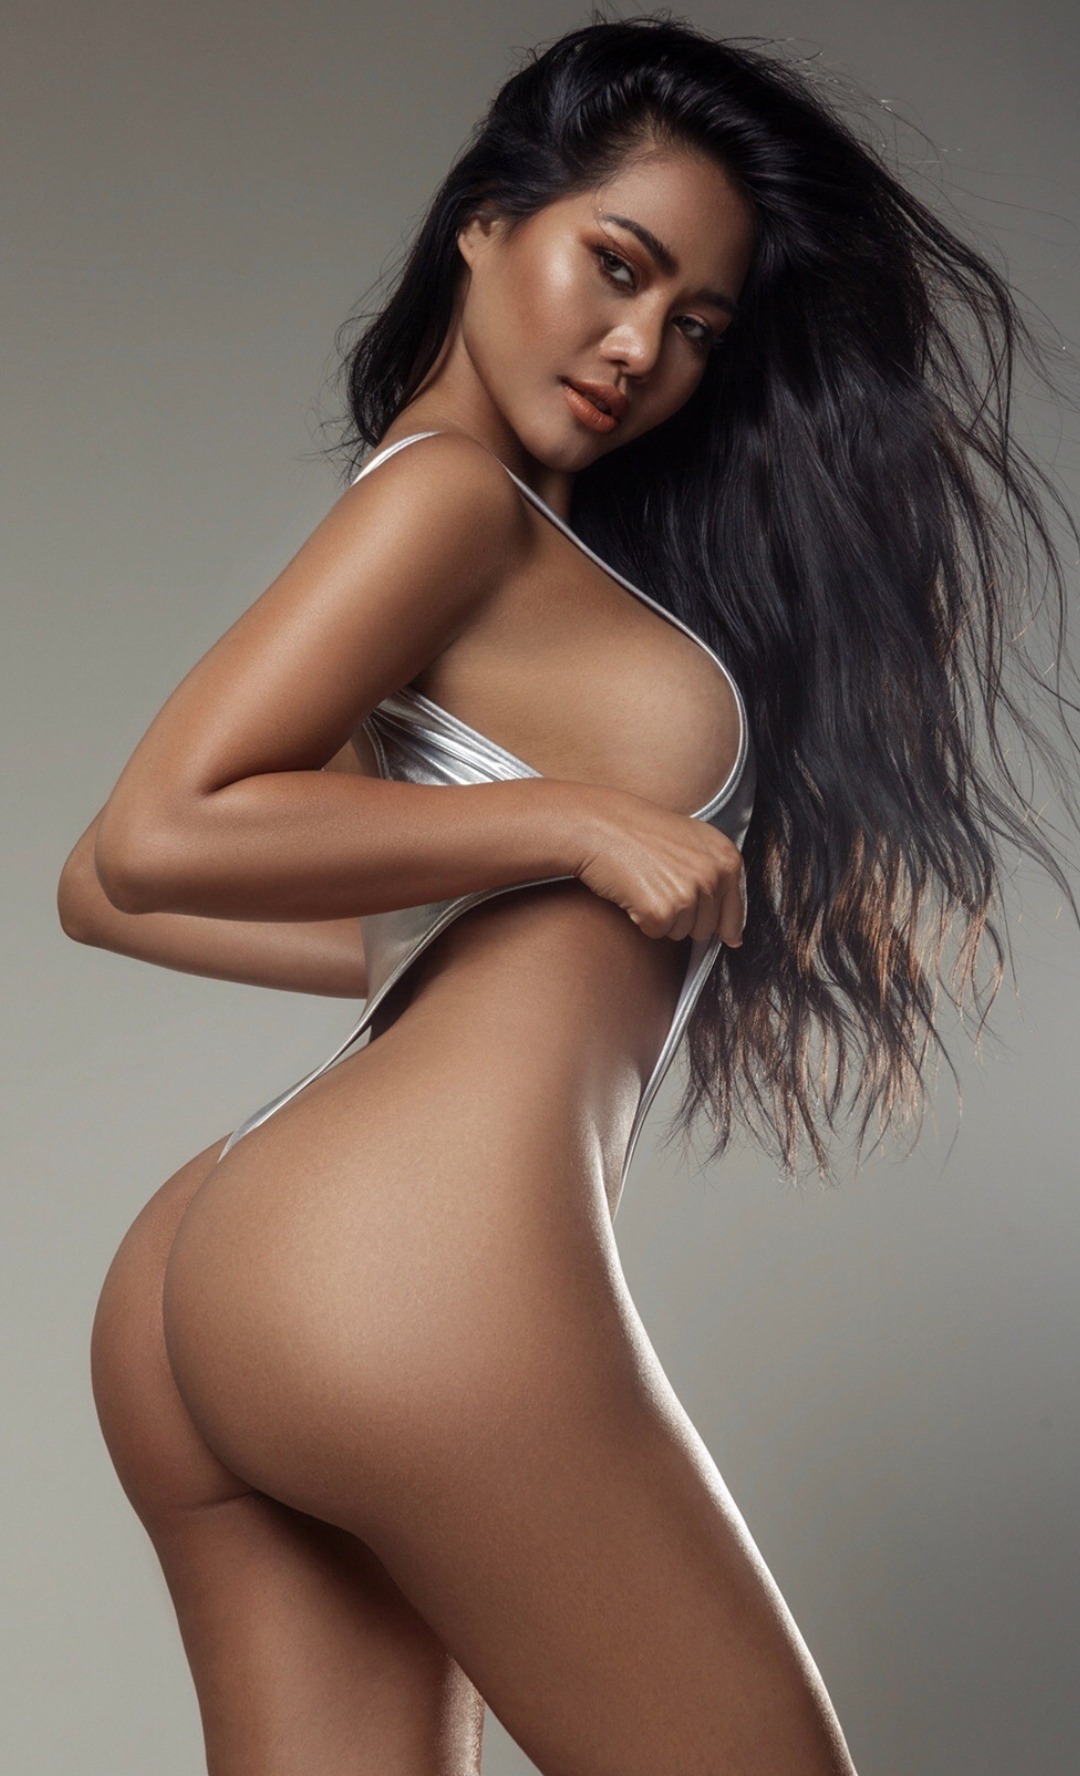 Asiaticas Ass pin en mujeres reales